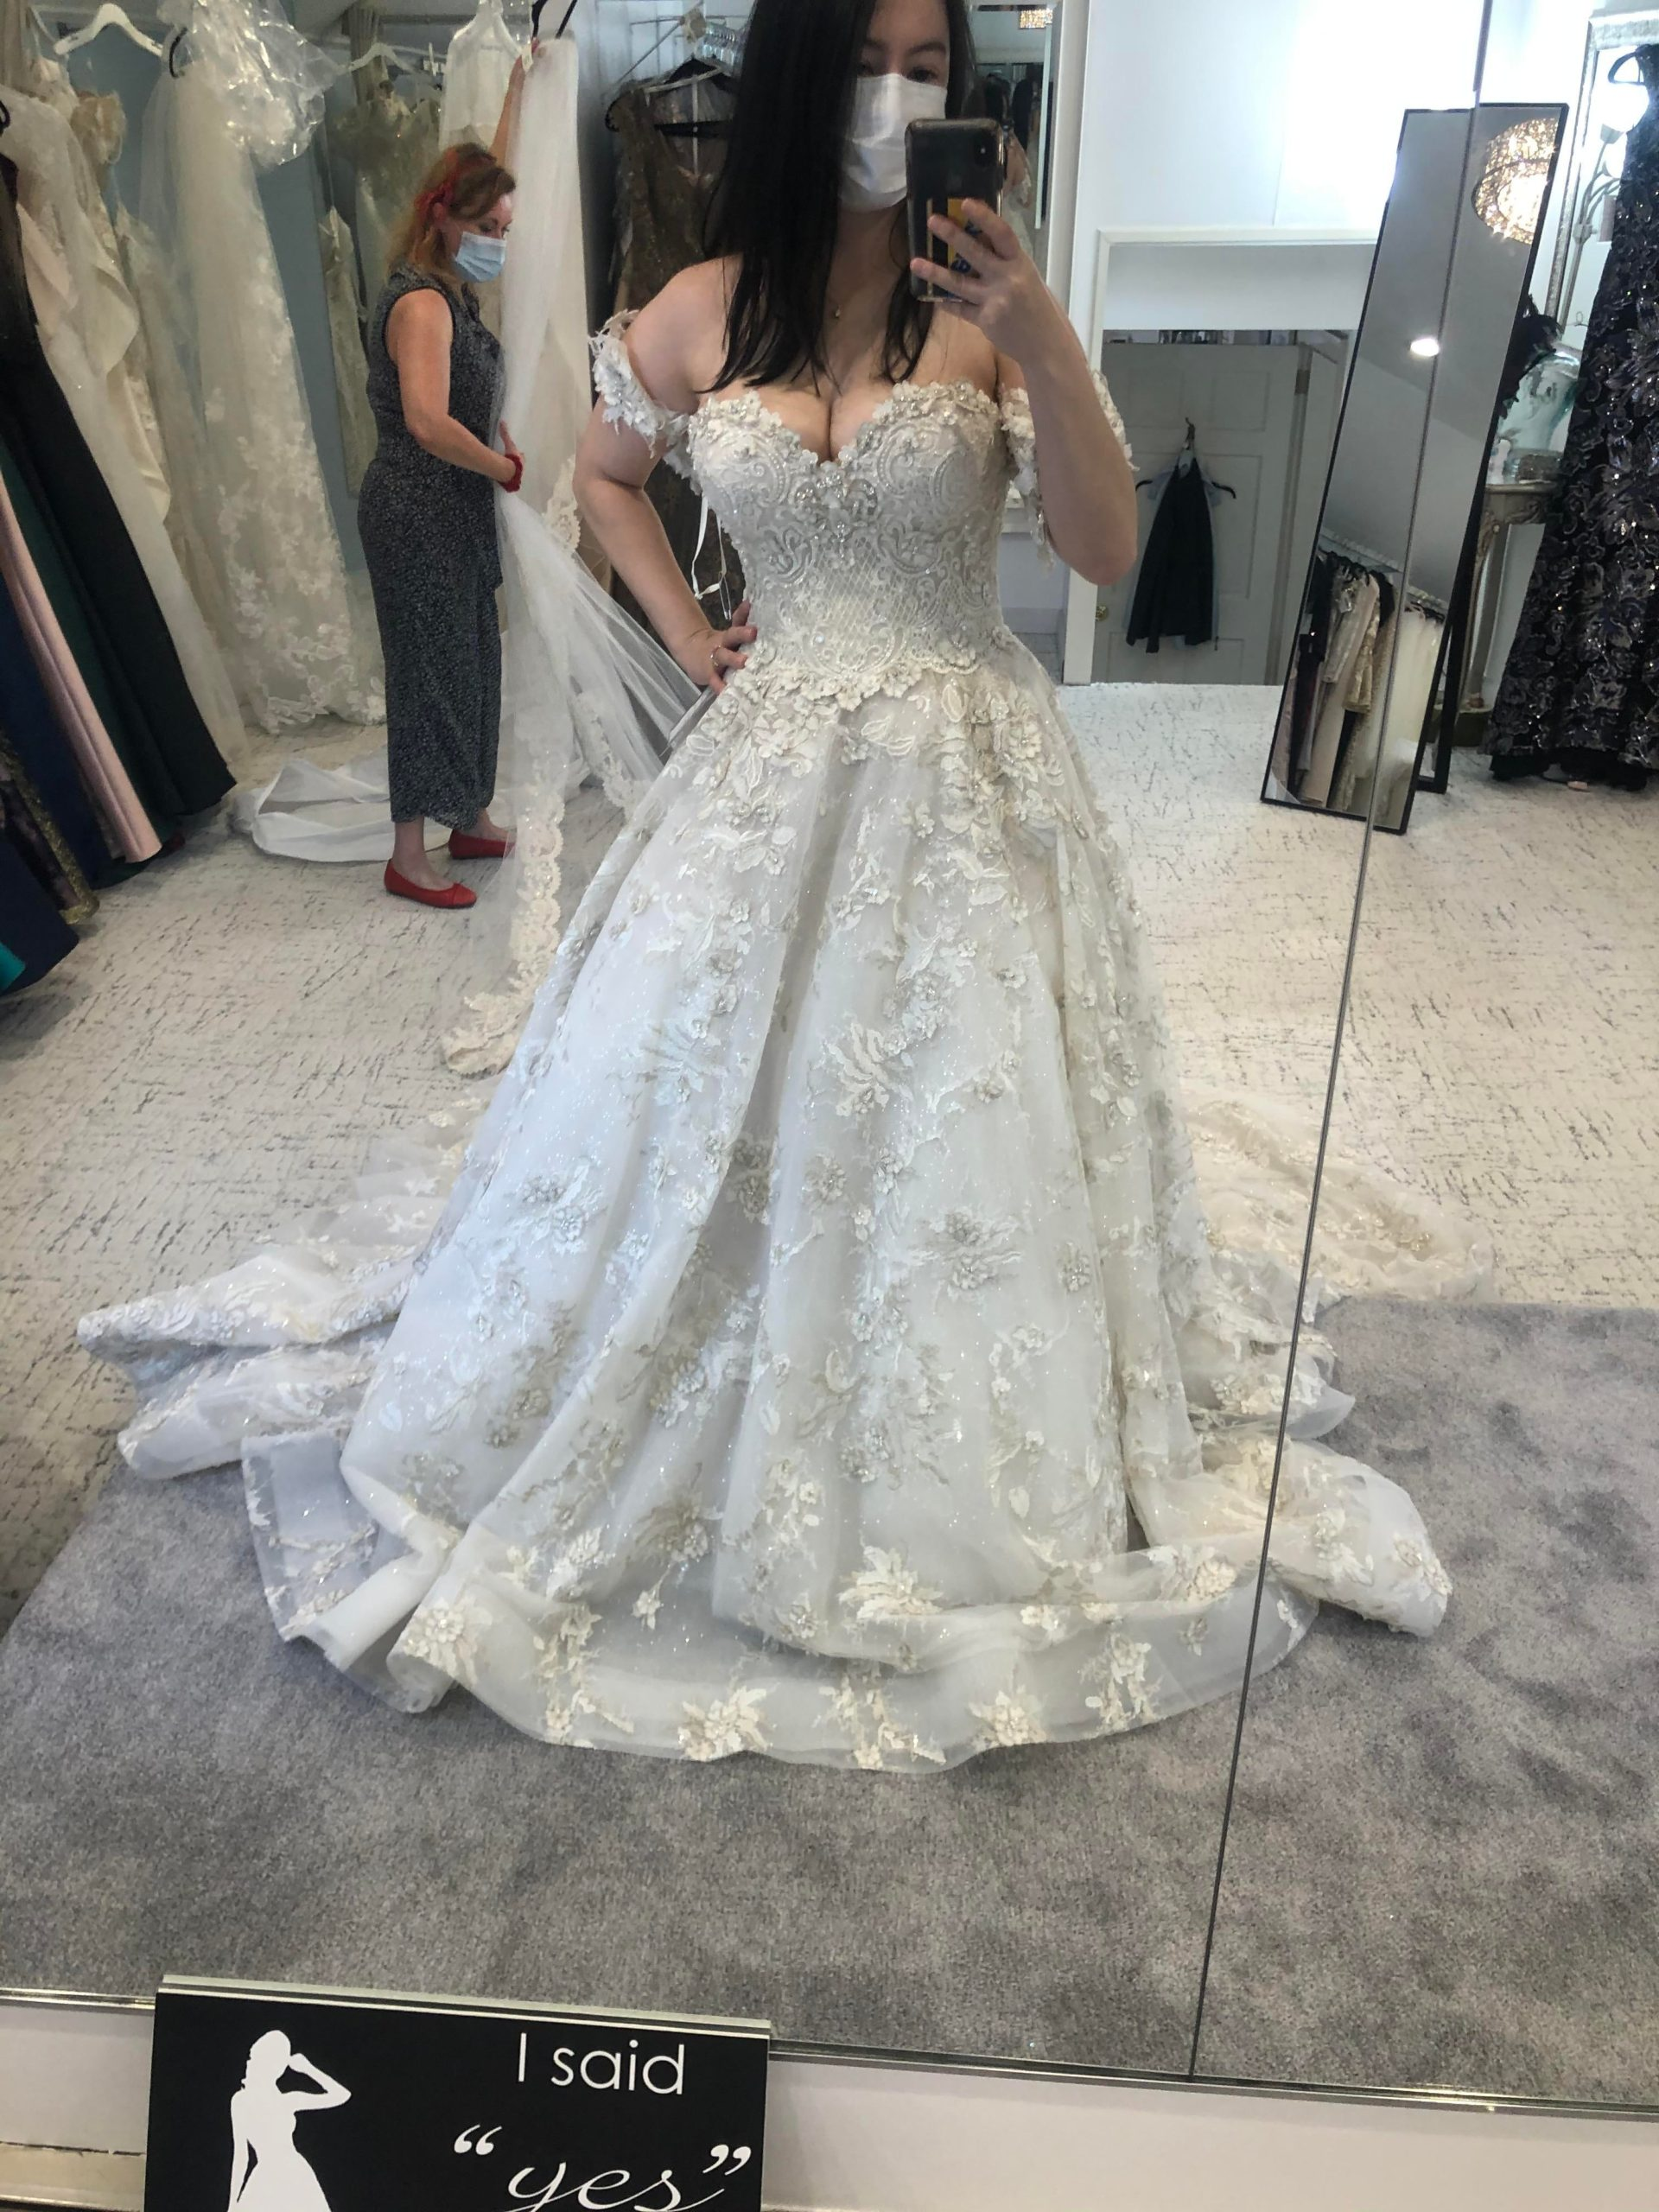 The option arm bands to my dress make me feel look/feel like a tavern wench, but I'm into it. : weddingdress